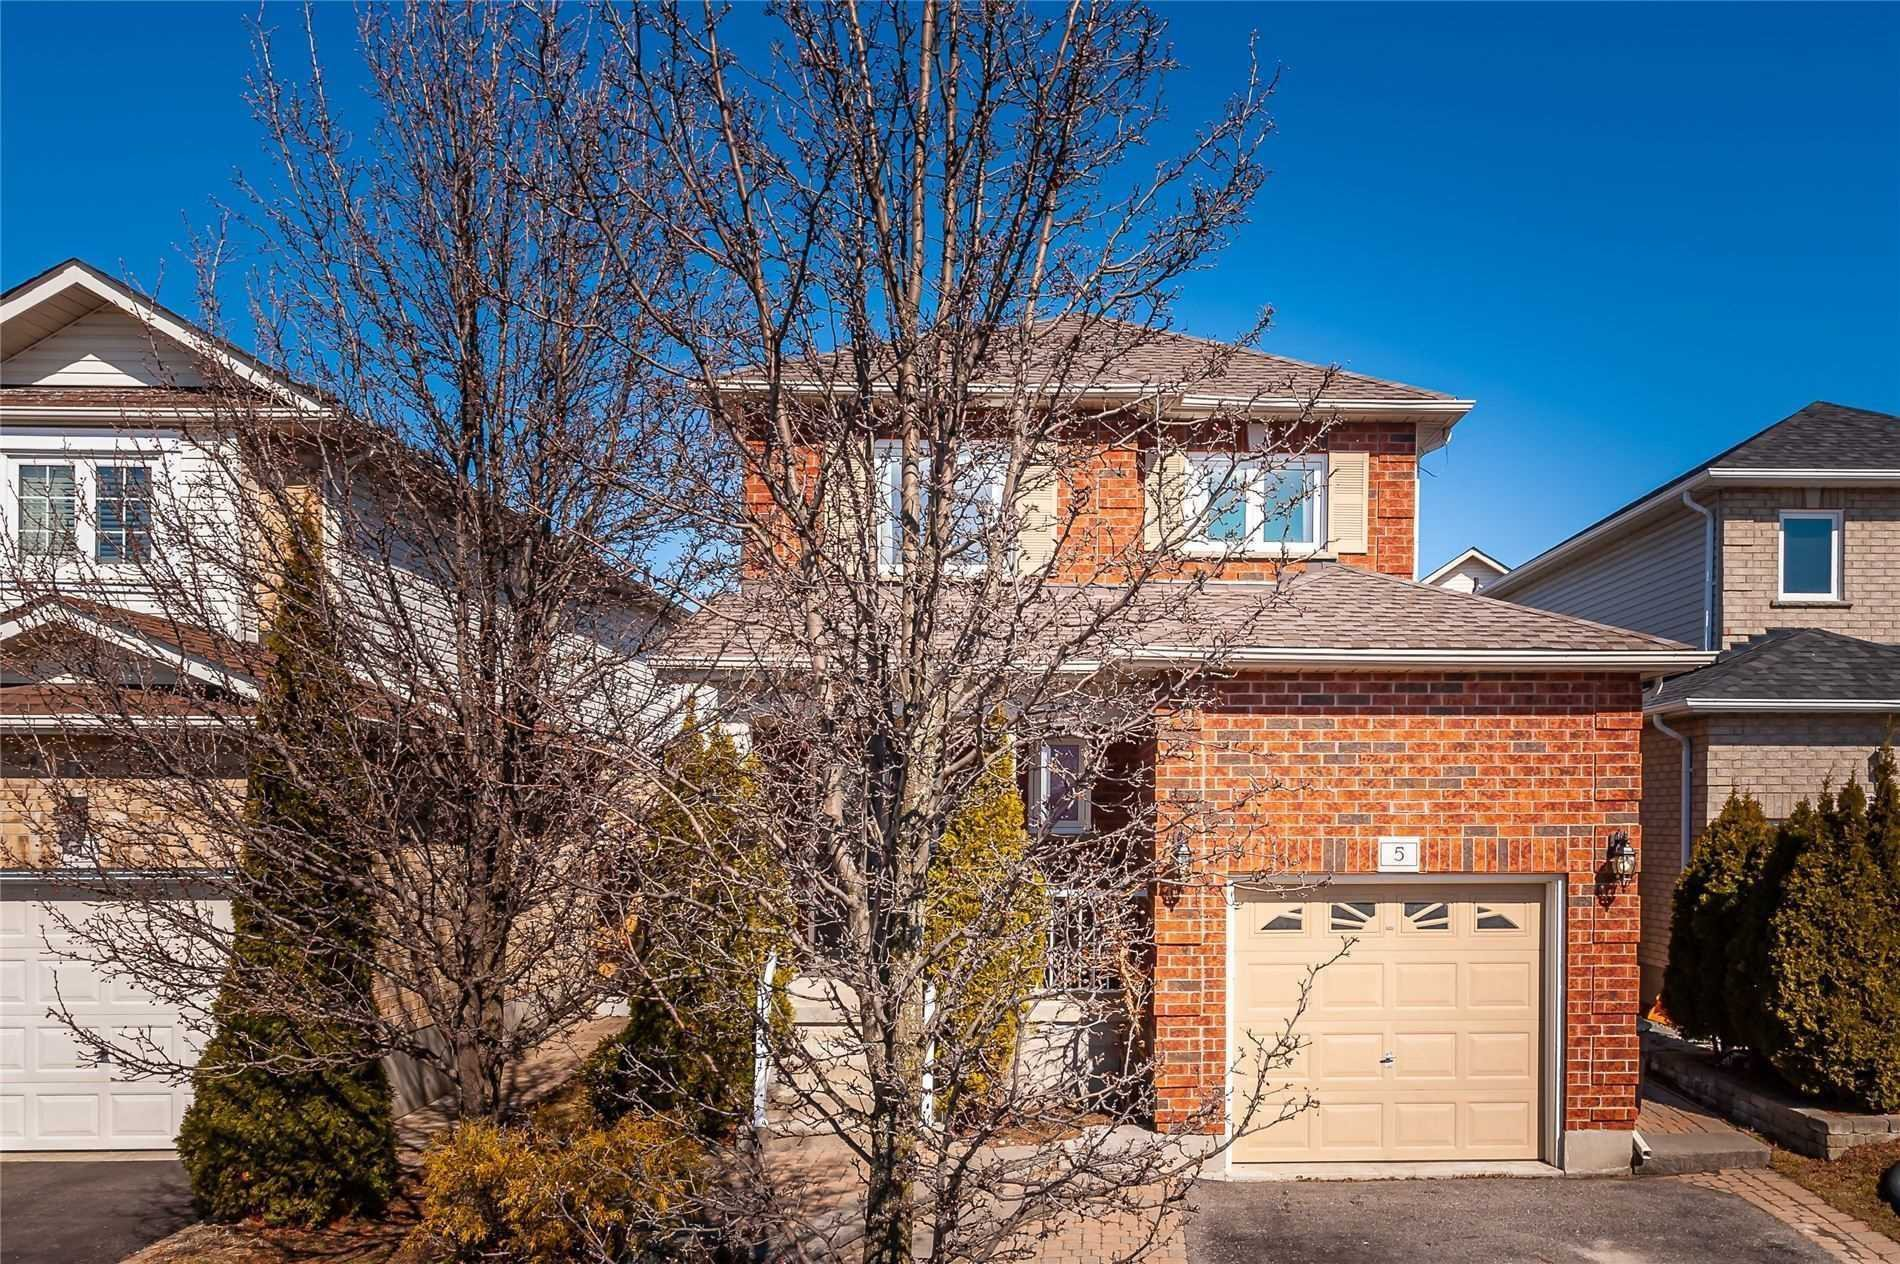 Main Photo: 5 Daley Avenue in Clarington: Bowmanville House (2-Storey) for sale : MLS®# E4745943